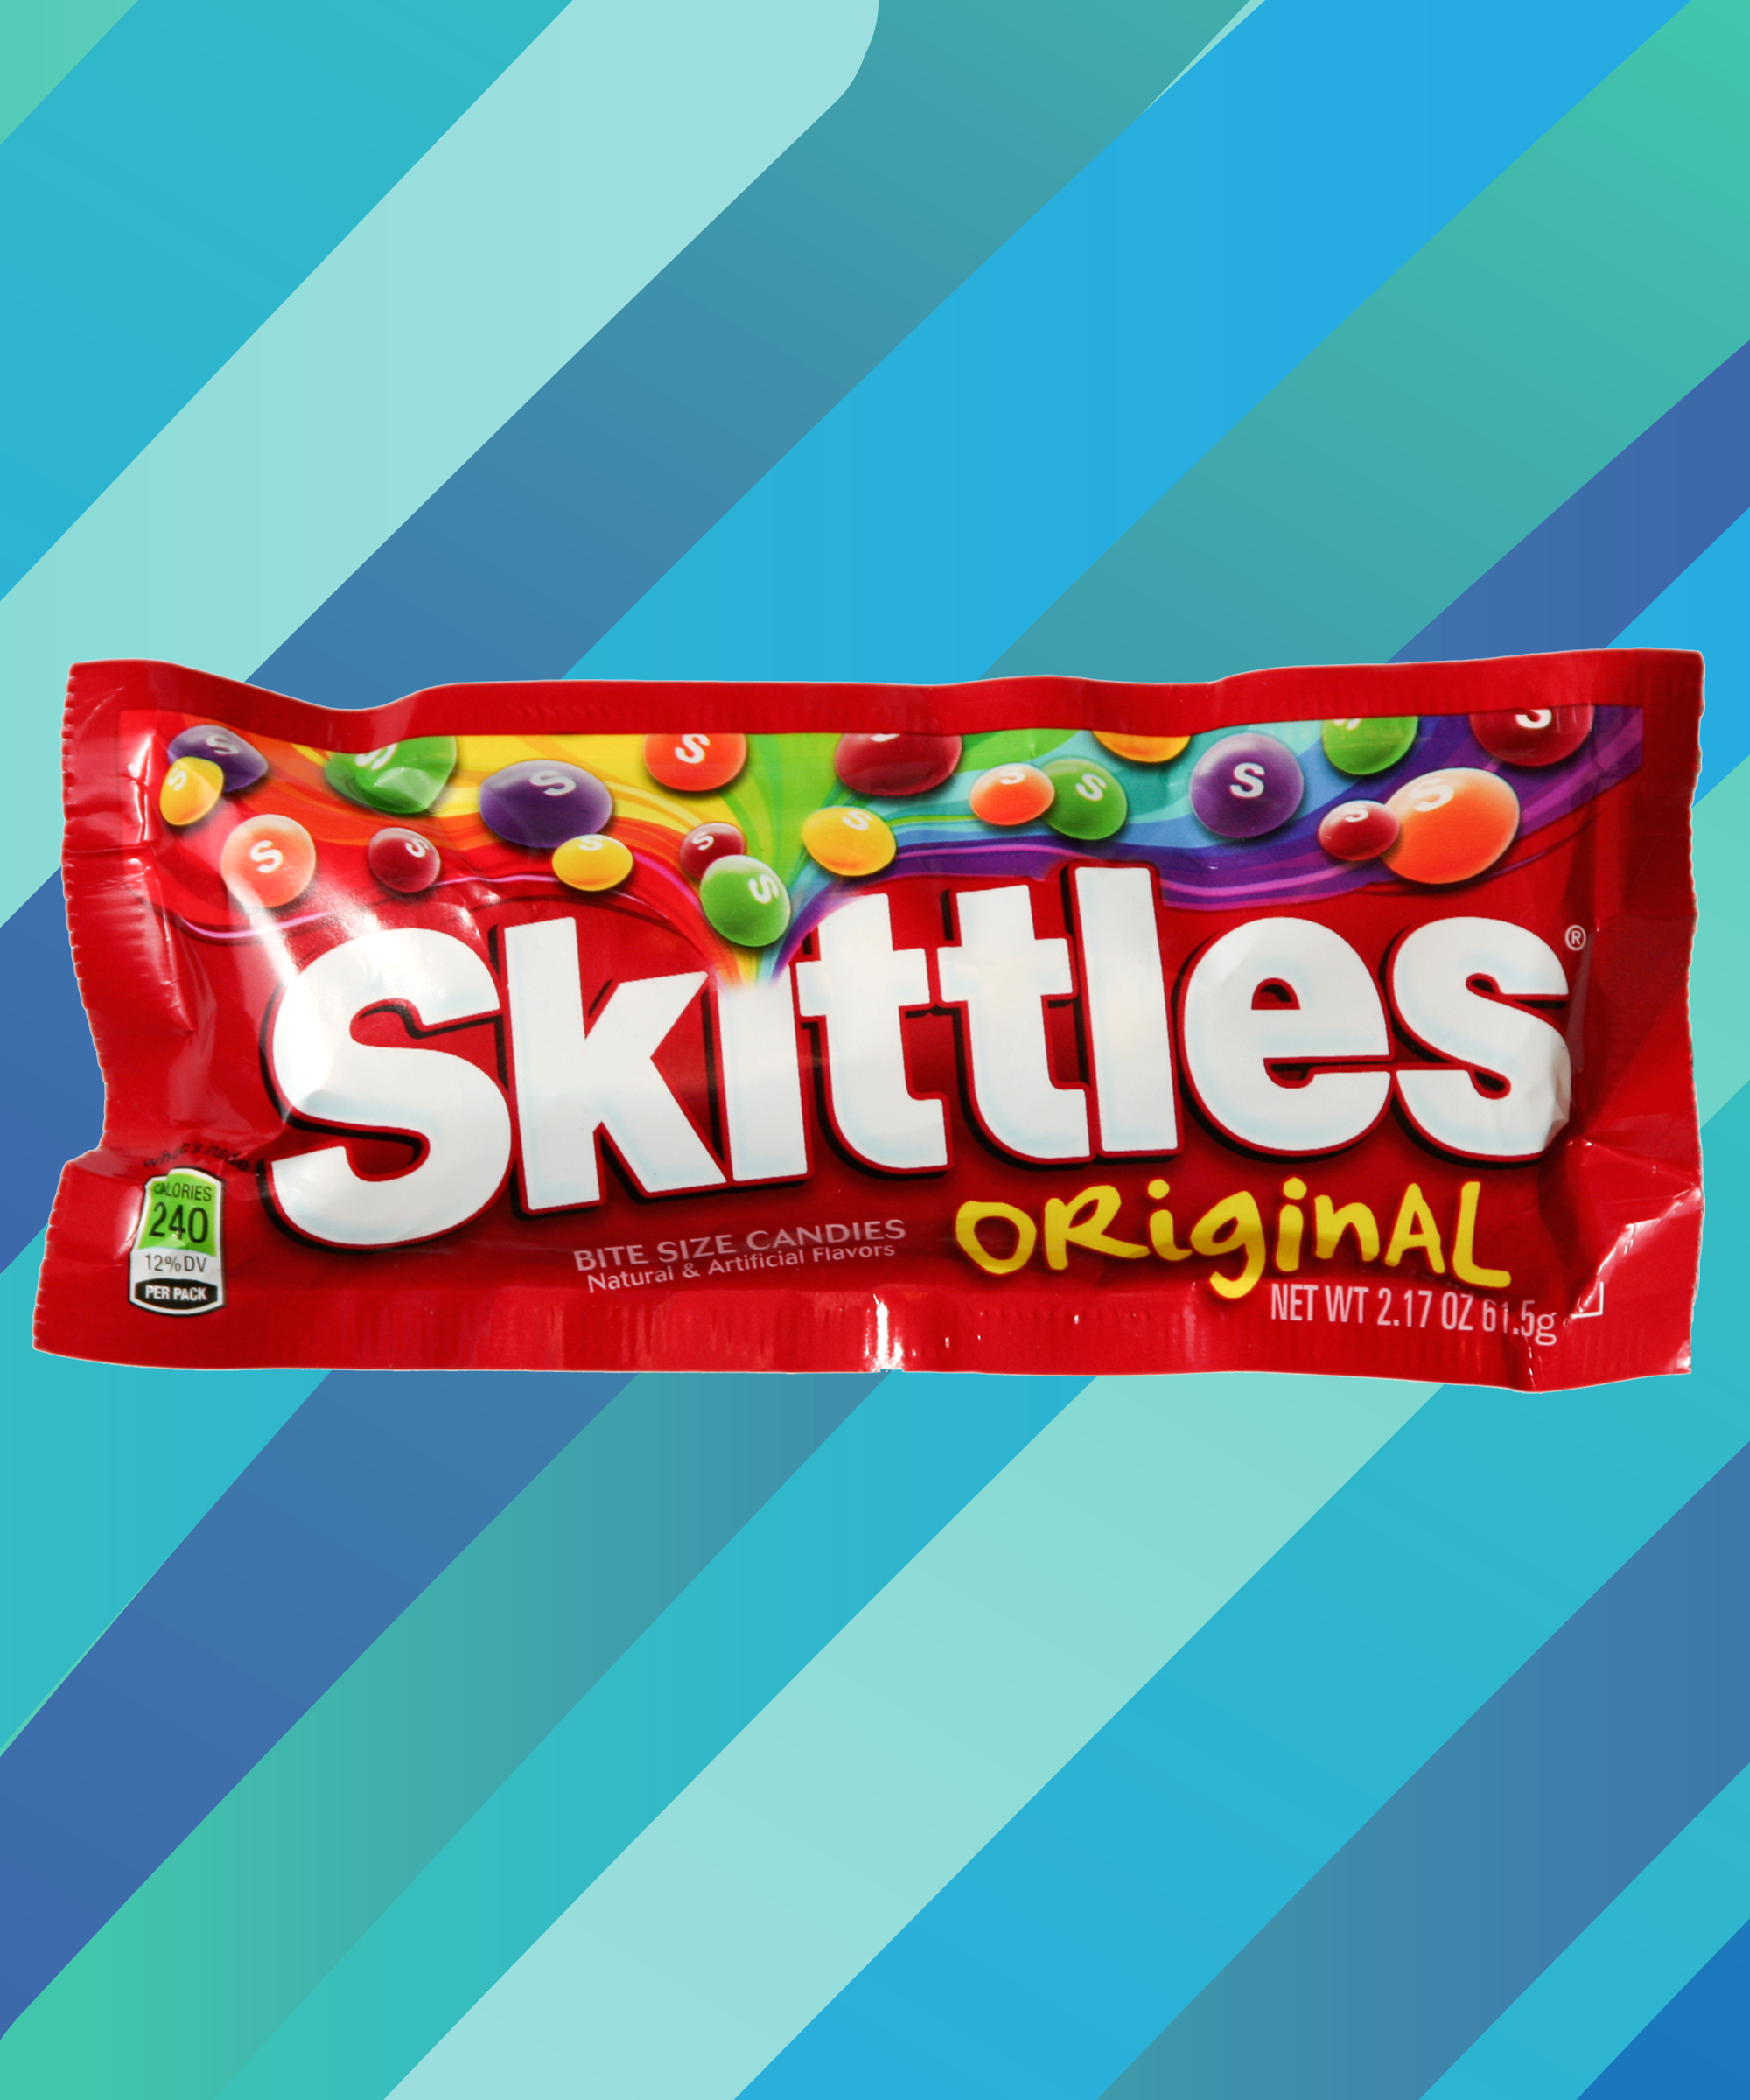 Why There Are So Many Yellow Skittles In A Bag